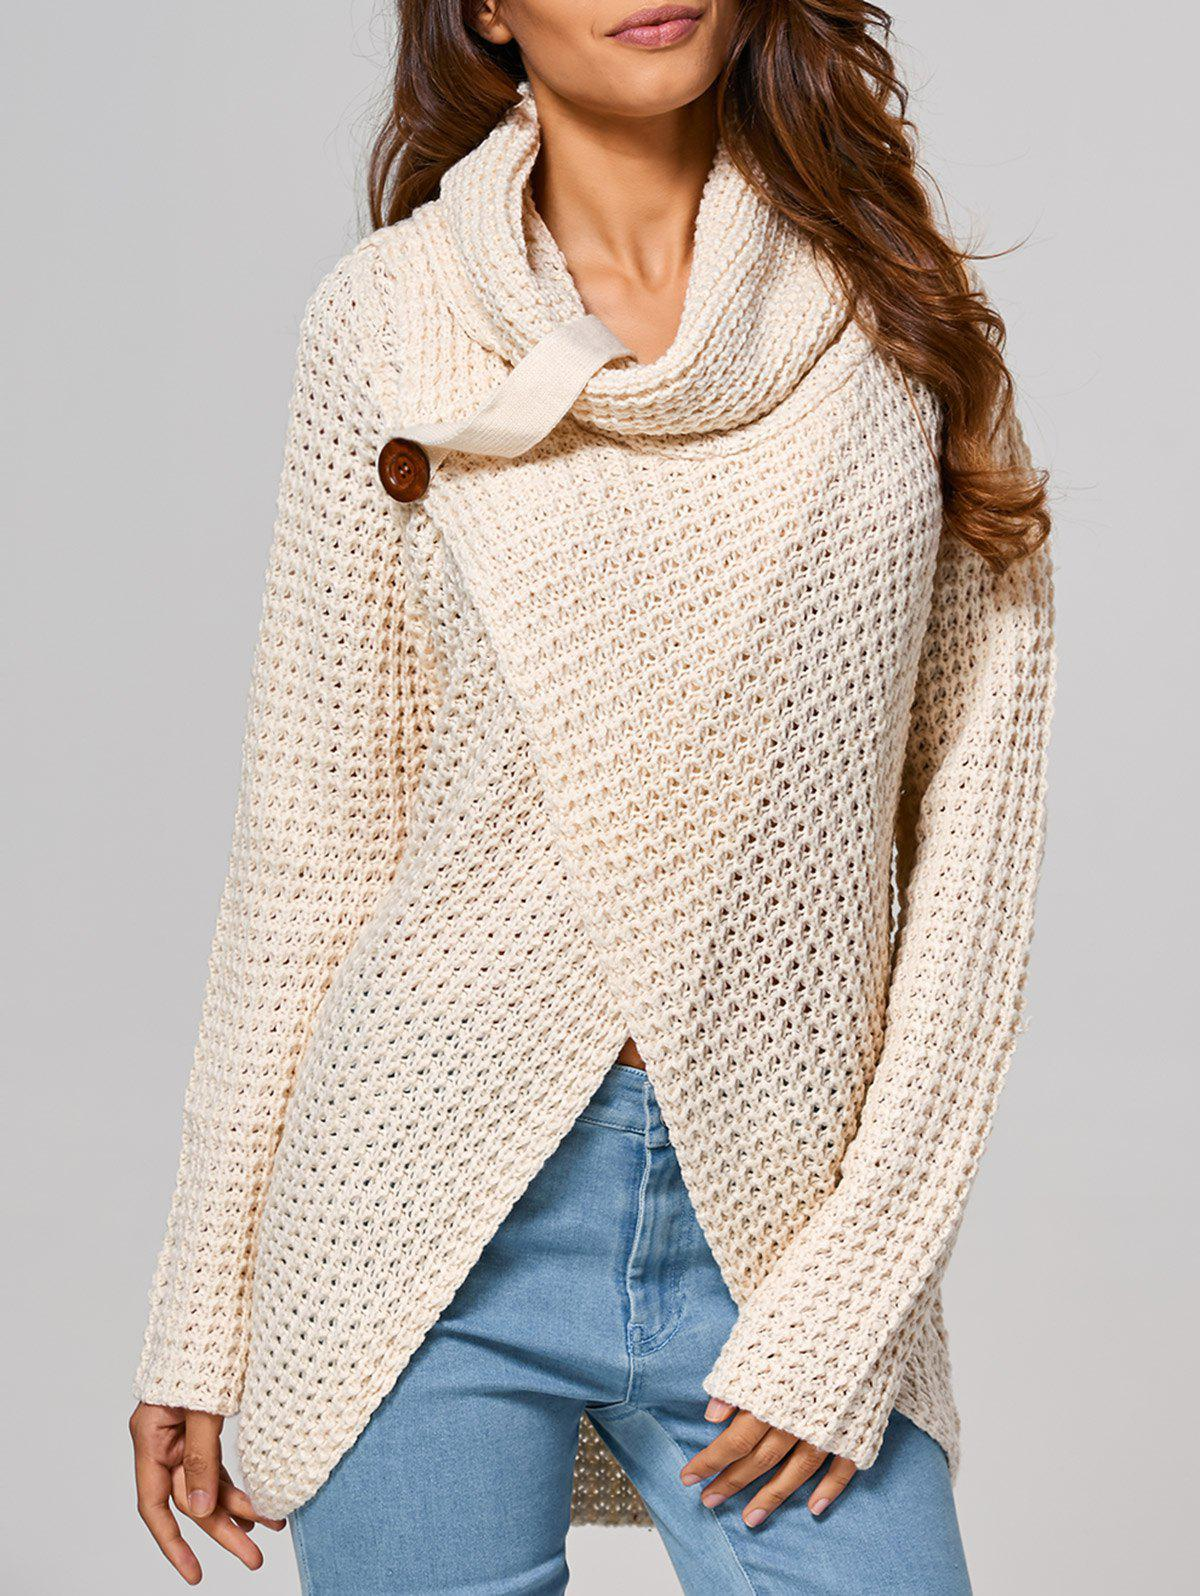 Hollow Out Front Slit Wrap Sweater front slit long knit sweater